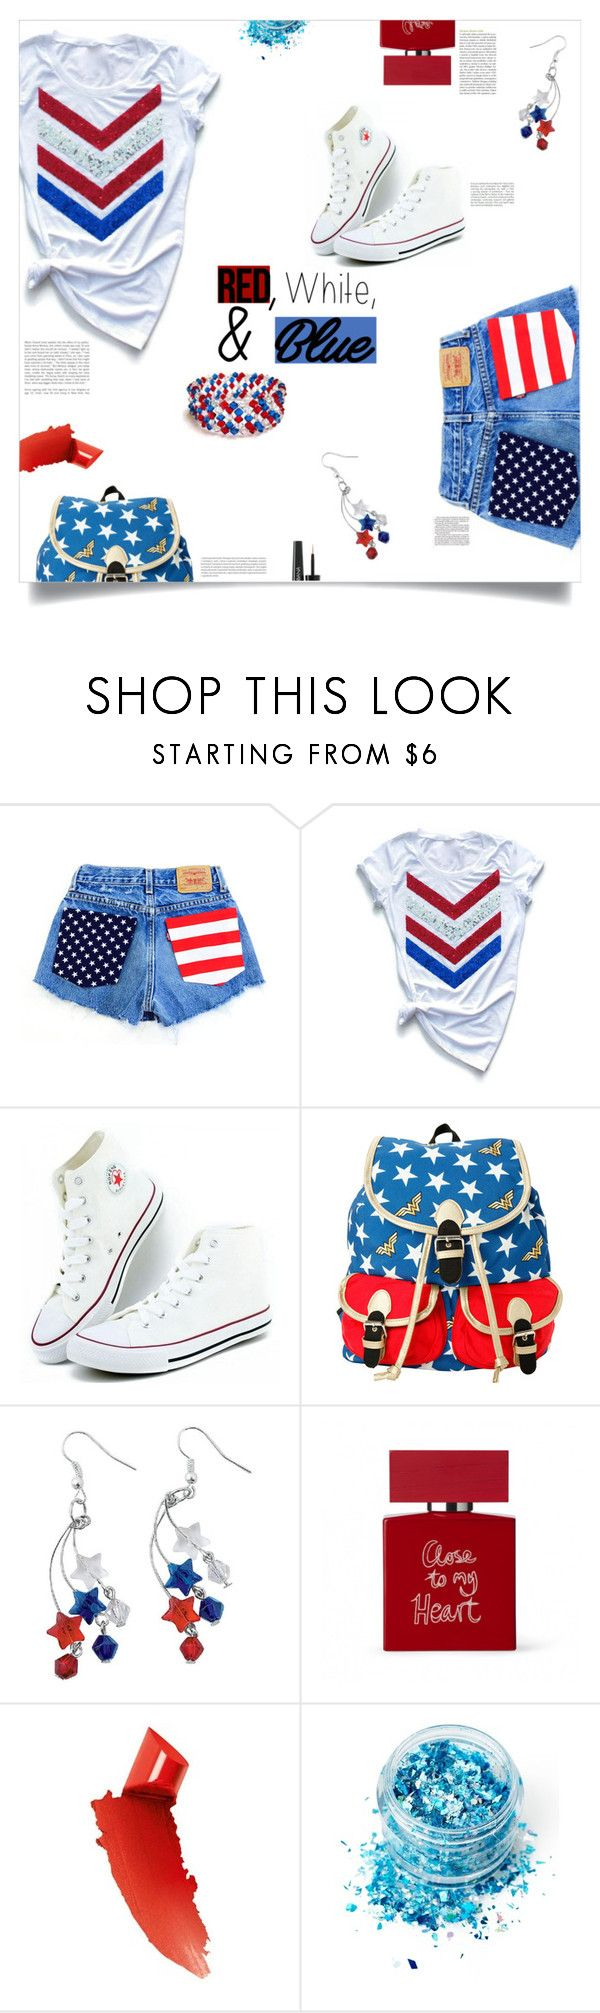 """Independence Day, Roland Emmerich (1996)"" by agla83 ❤ liked on Polyvore featuring DC Comics, Oris, Bella Freud, By Terry, In Your Dreams and Dolce&Gabbana"